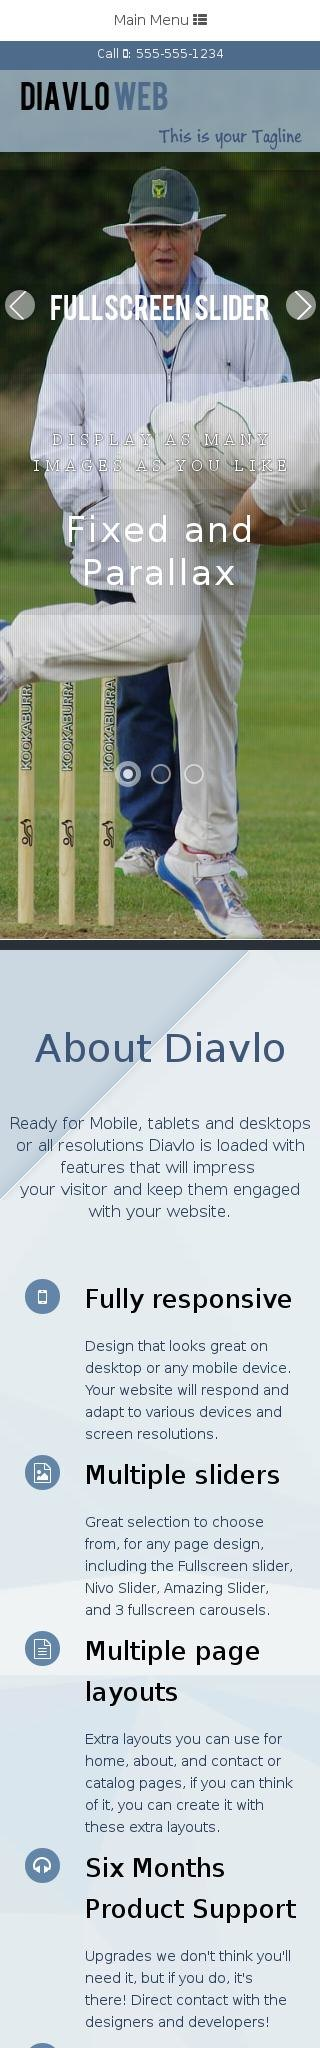 Mobile: Cricket Web Template